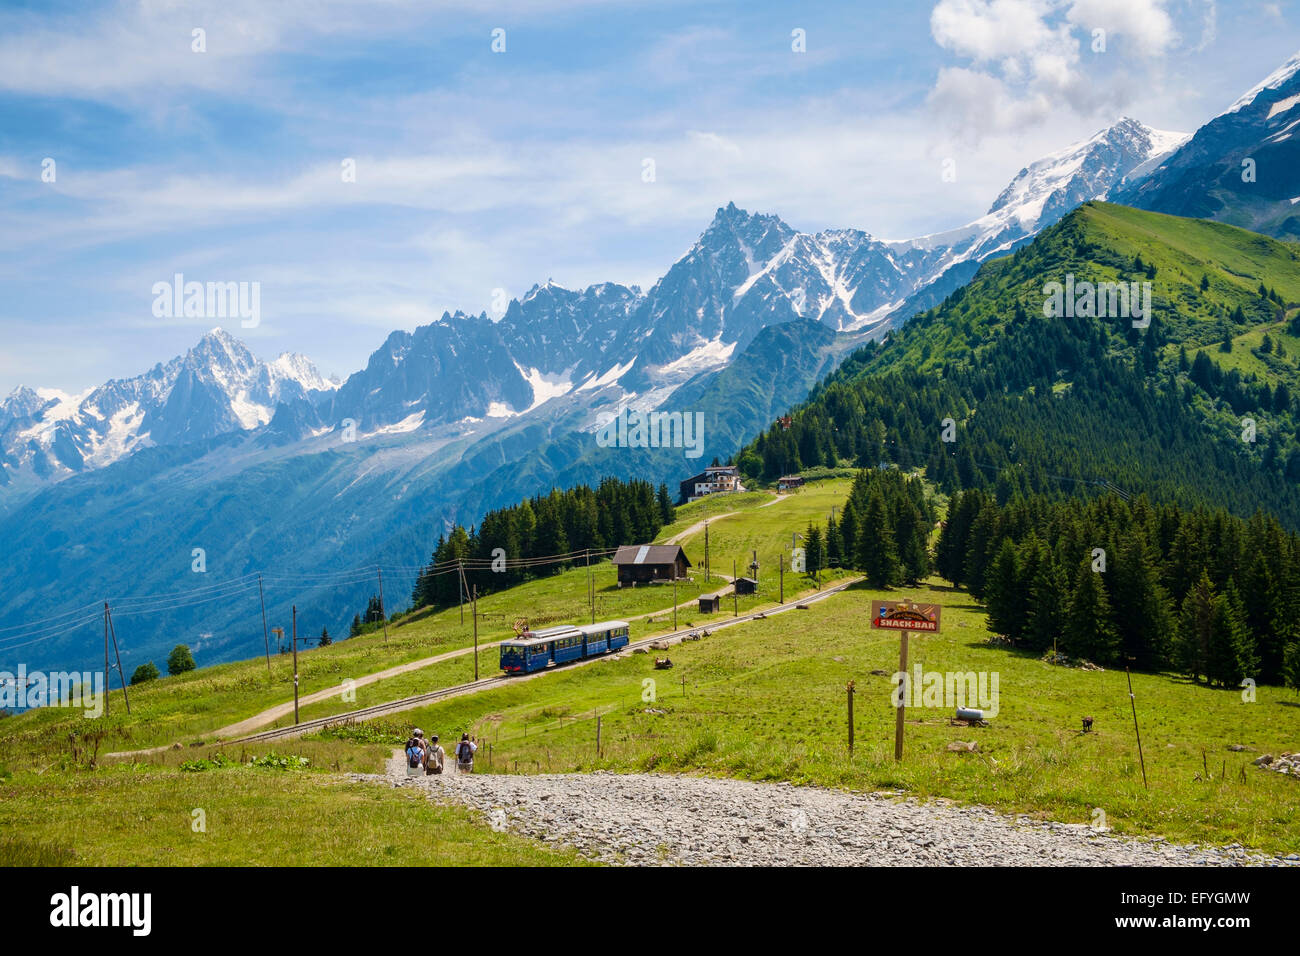 Walkers and Mont Blanc tramway cog train at Bellevue over Chamonix Valley, French Alps, France, Europe - Stock Image